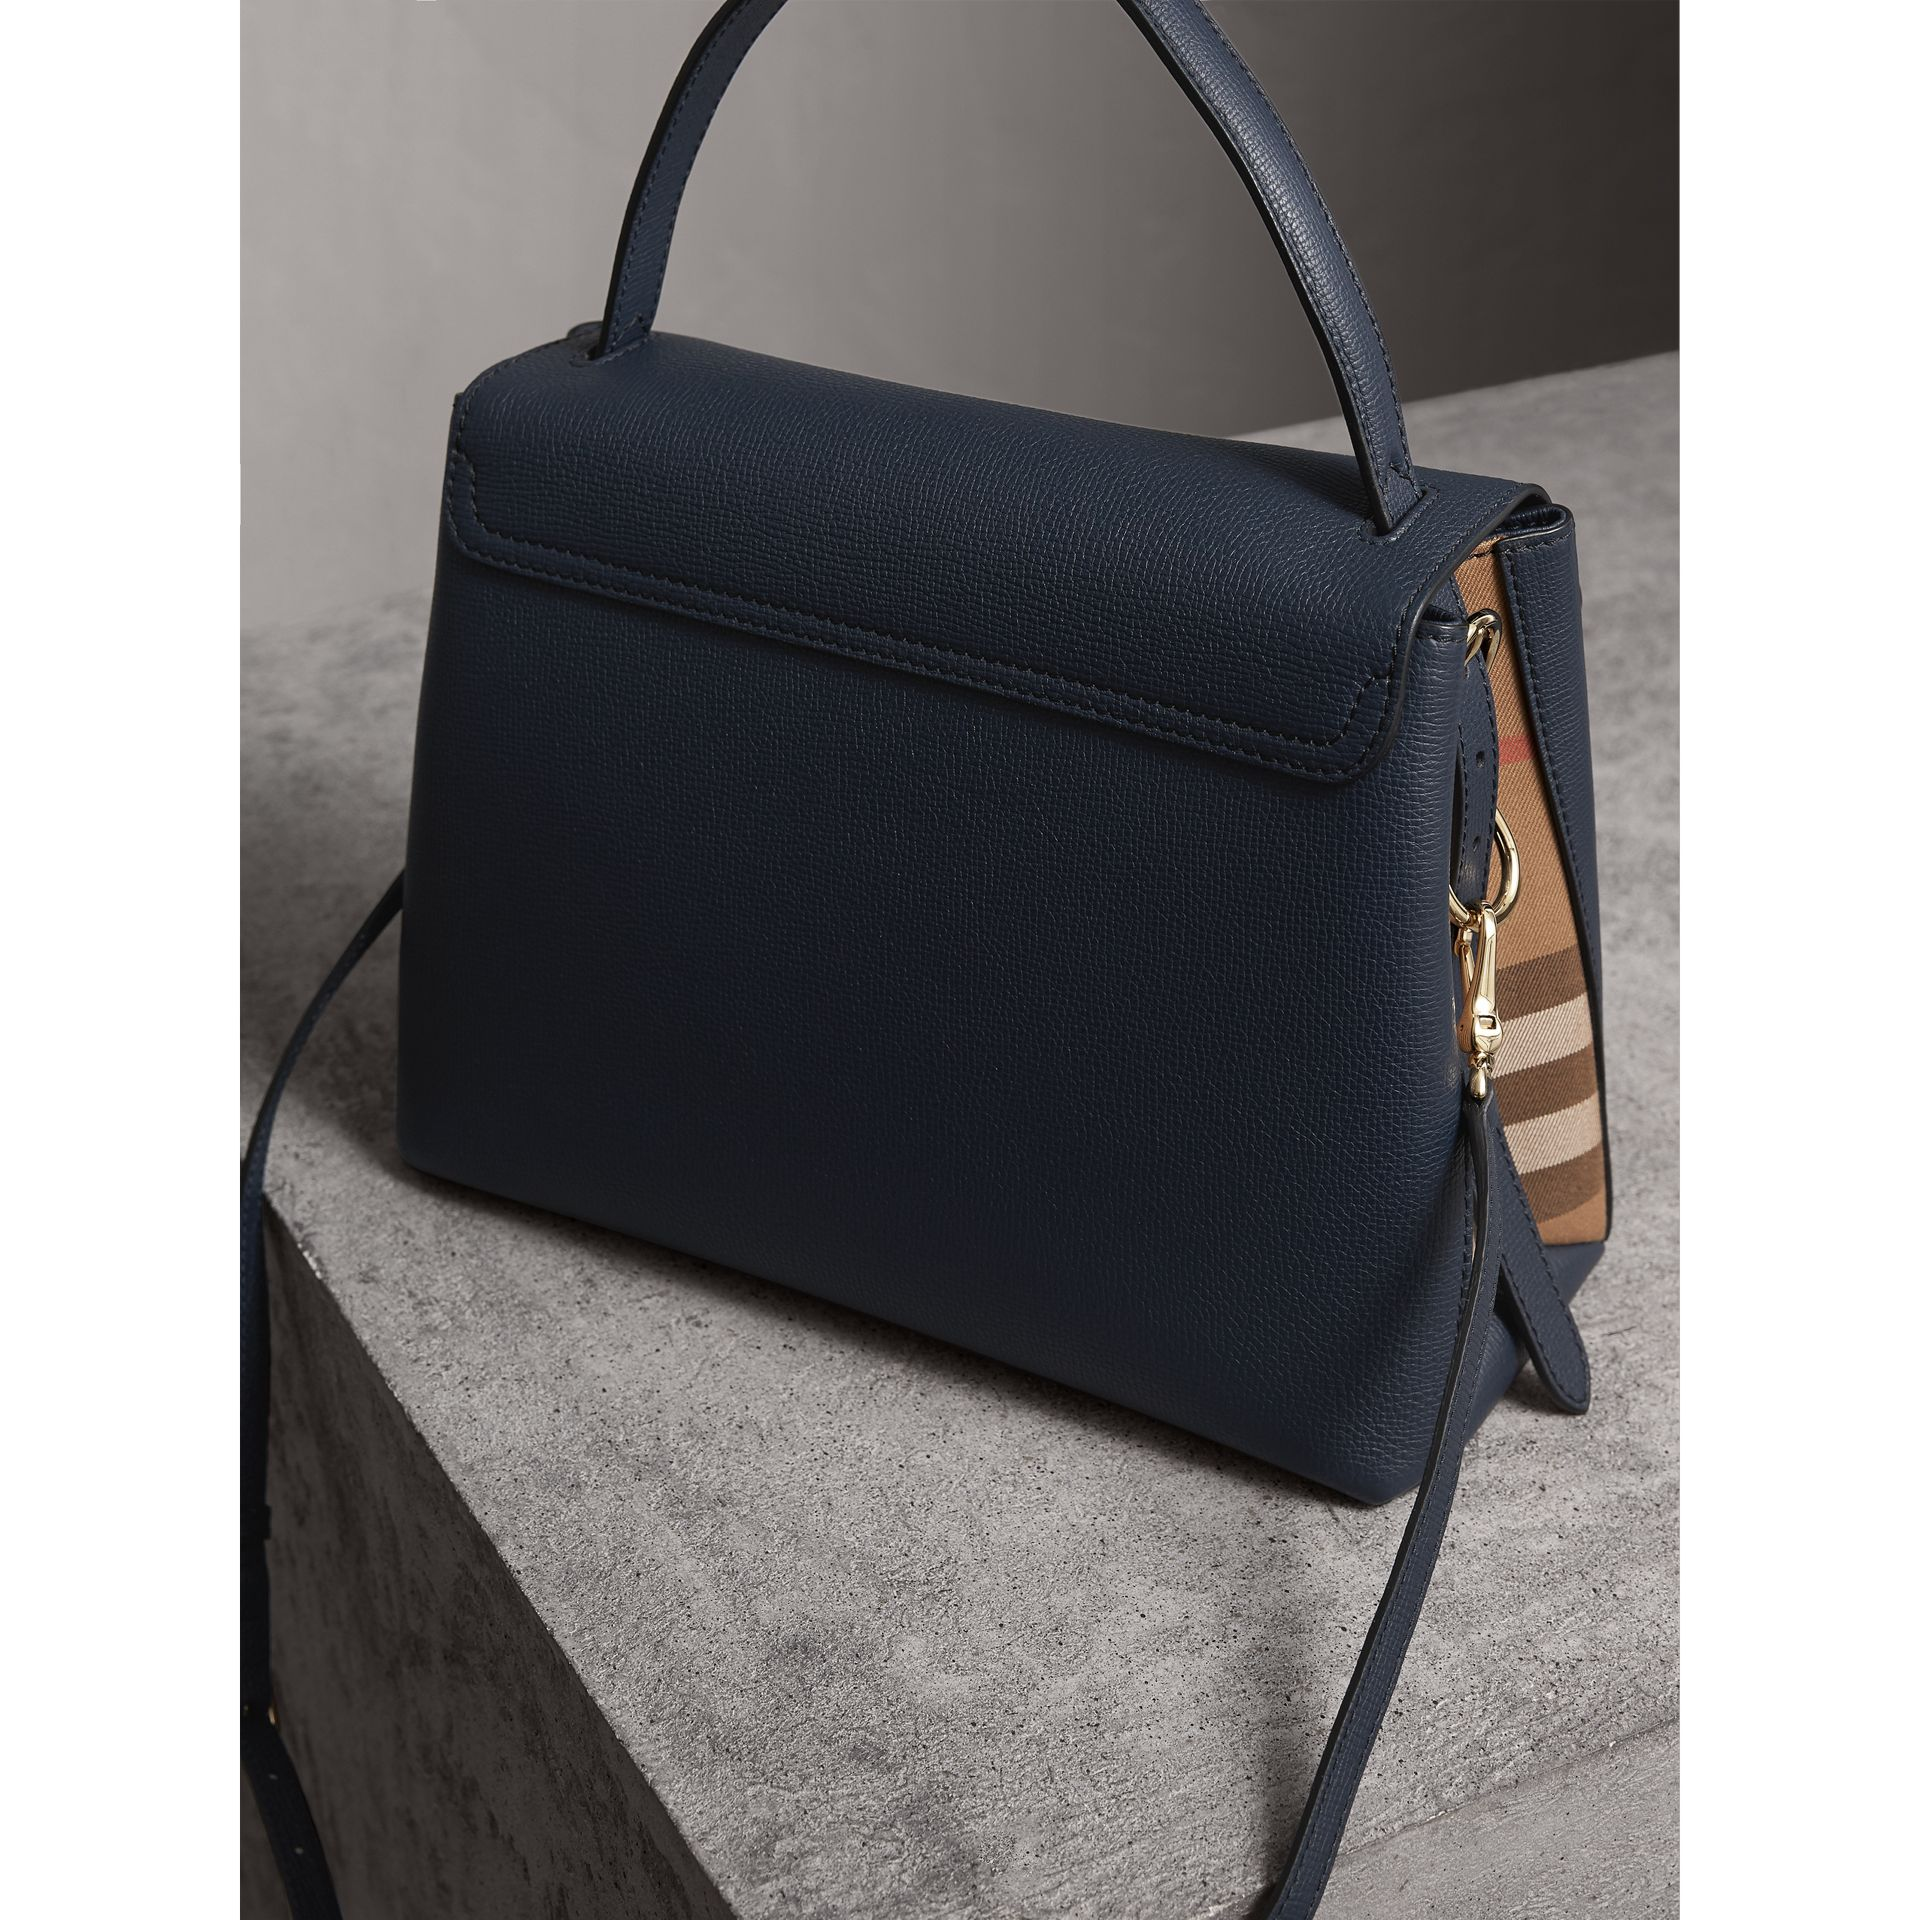 Medium Grainy Leather and House Check Tote Bag in Ink Blue - Women | Burberry - gallery image 5